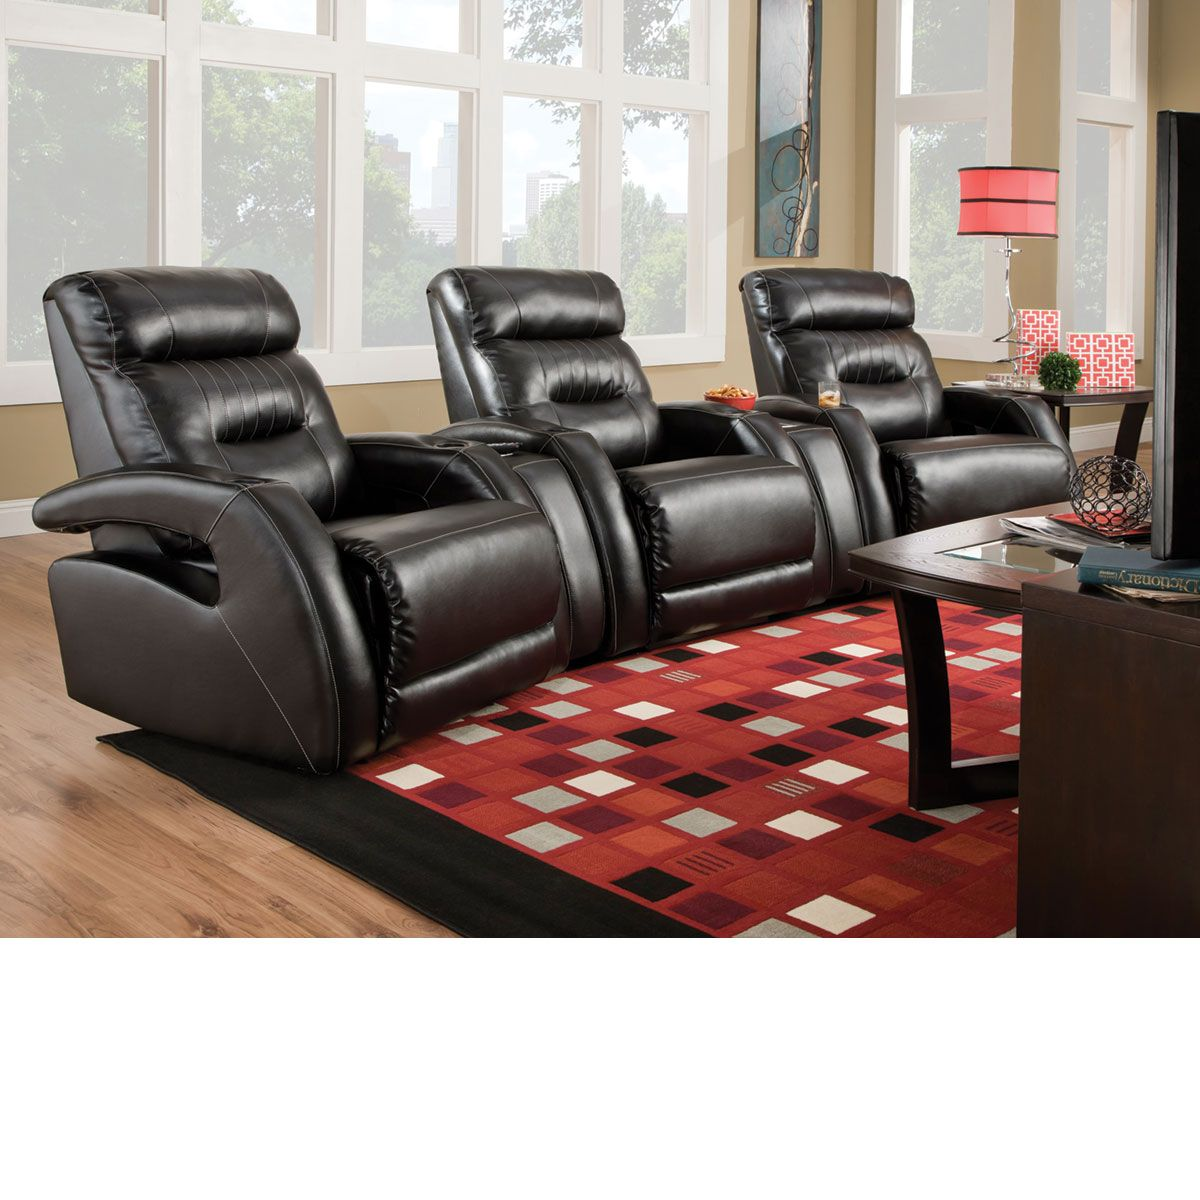 The dump furniture power recliner home theater